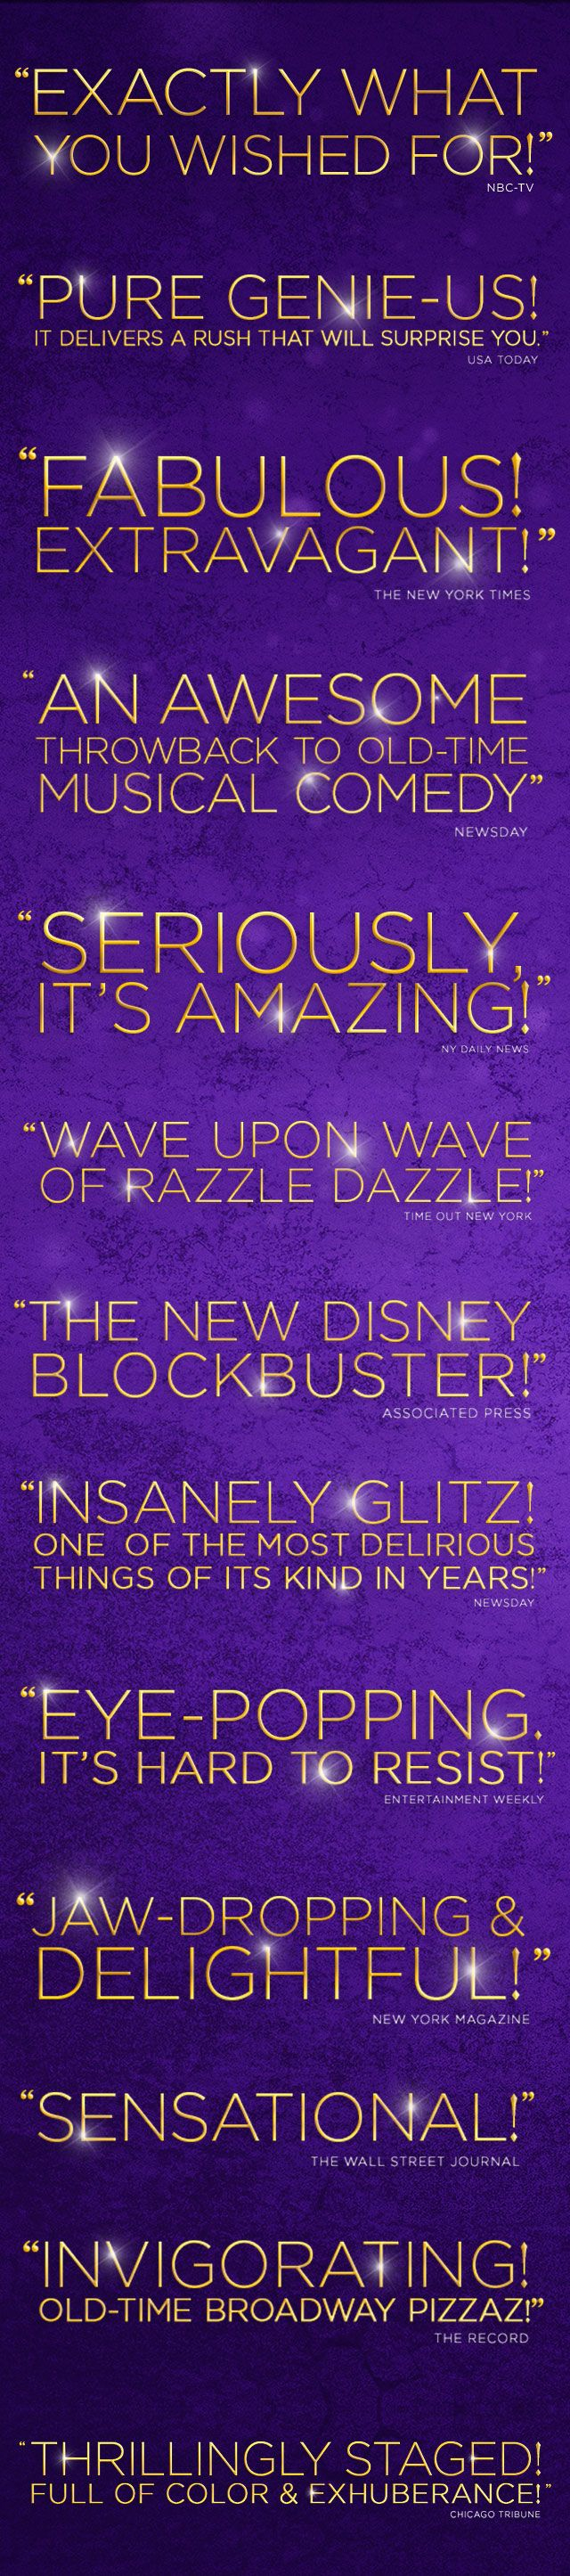 Disney's official site for tickets and information to the hit Broadway musical ALADDIN in New York City and on tour across America!